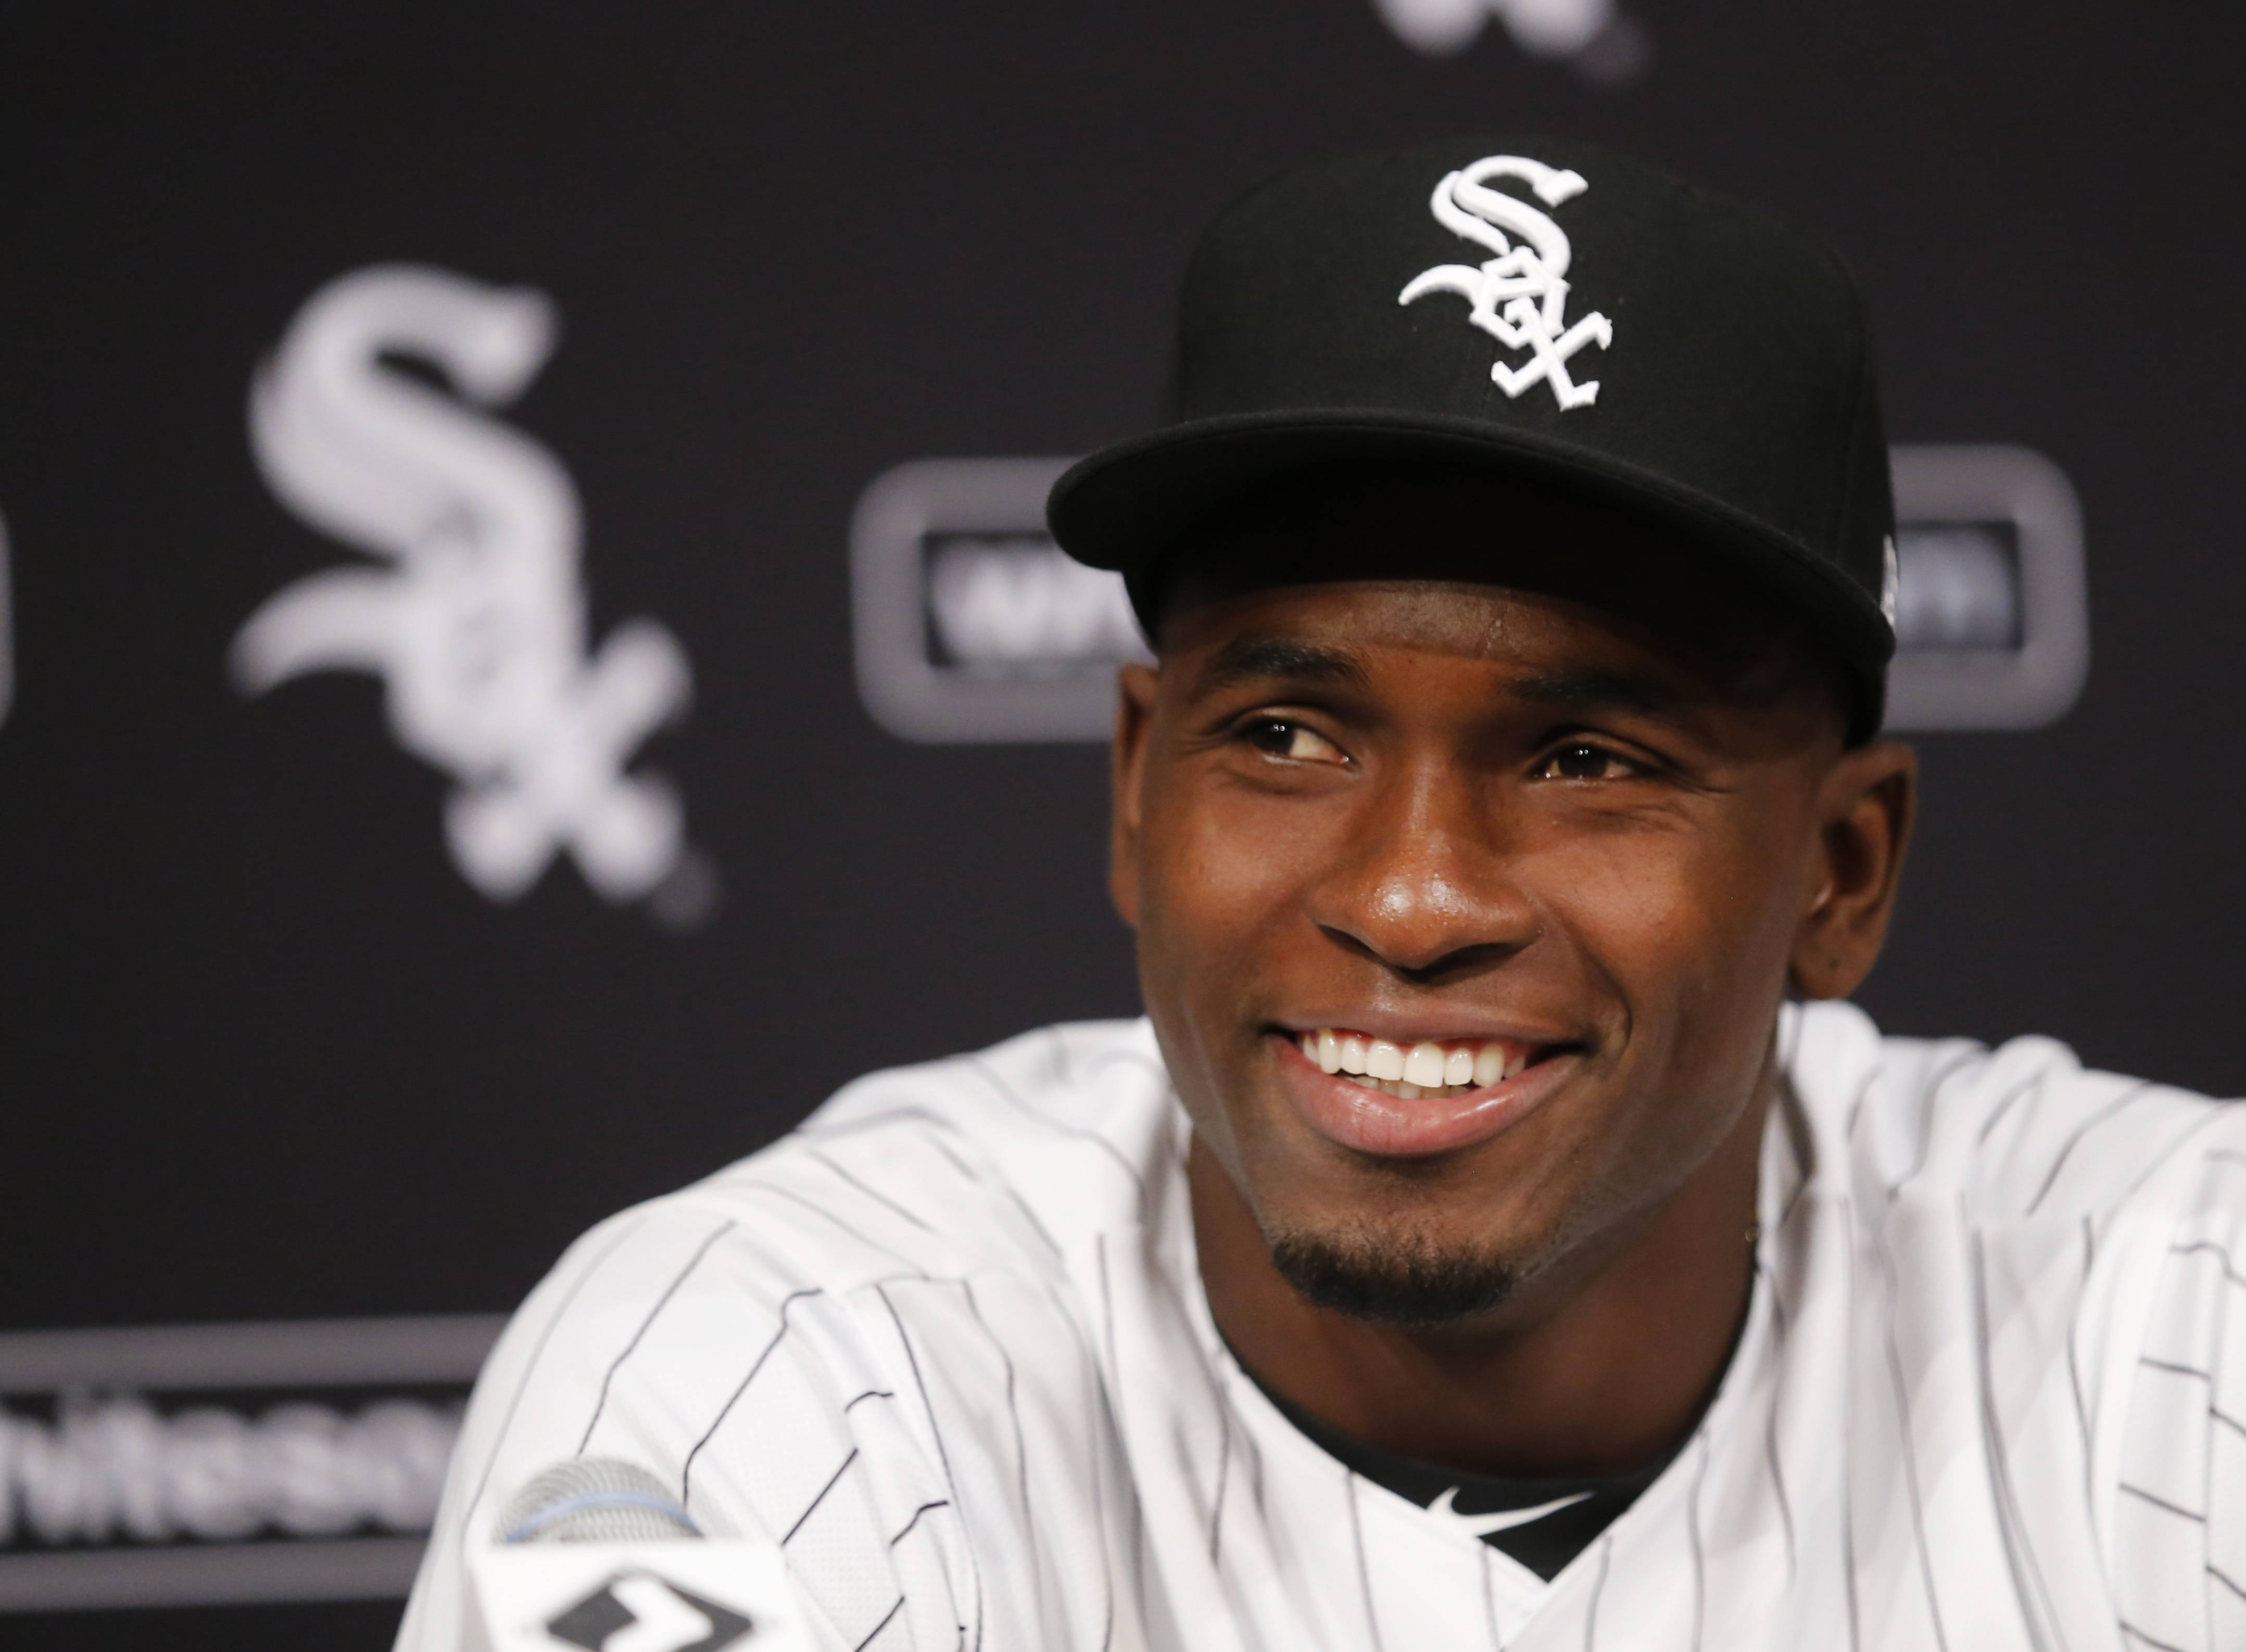 Chicago White Sox manager Rick Renteria saw 20-year-old outfielder Luis Robert play in the Dominican Republic this off-season and came away impressed with the prospect's all-around performance.